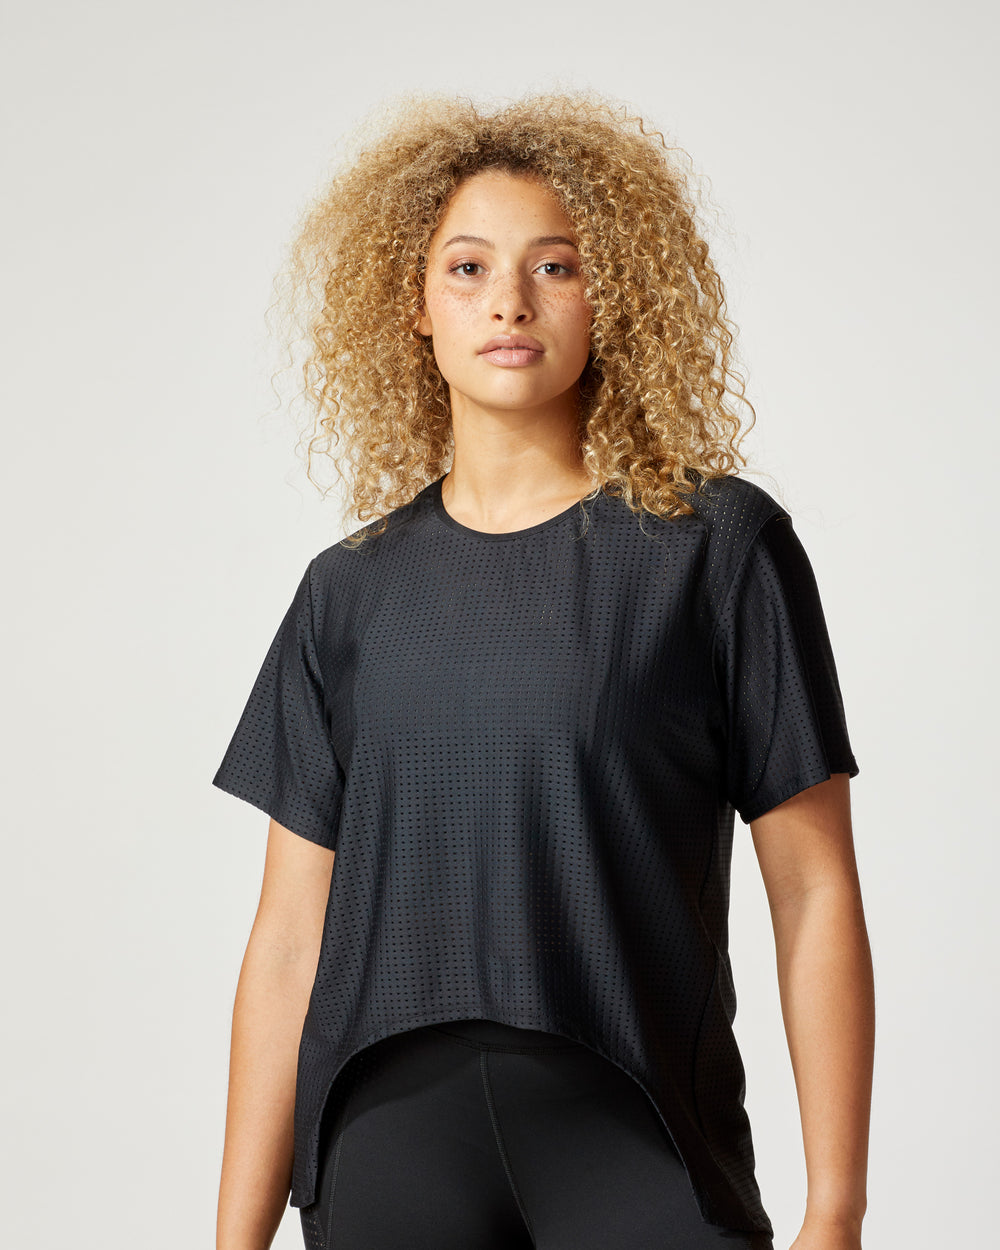 Airwave Tie Top - Black